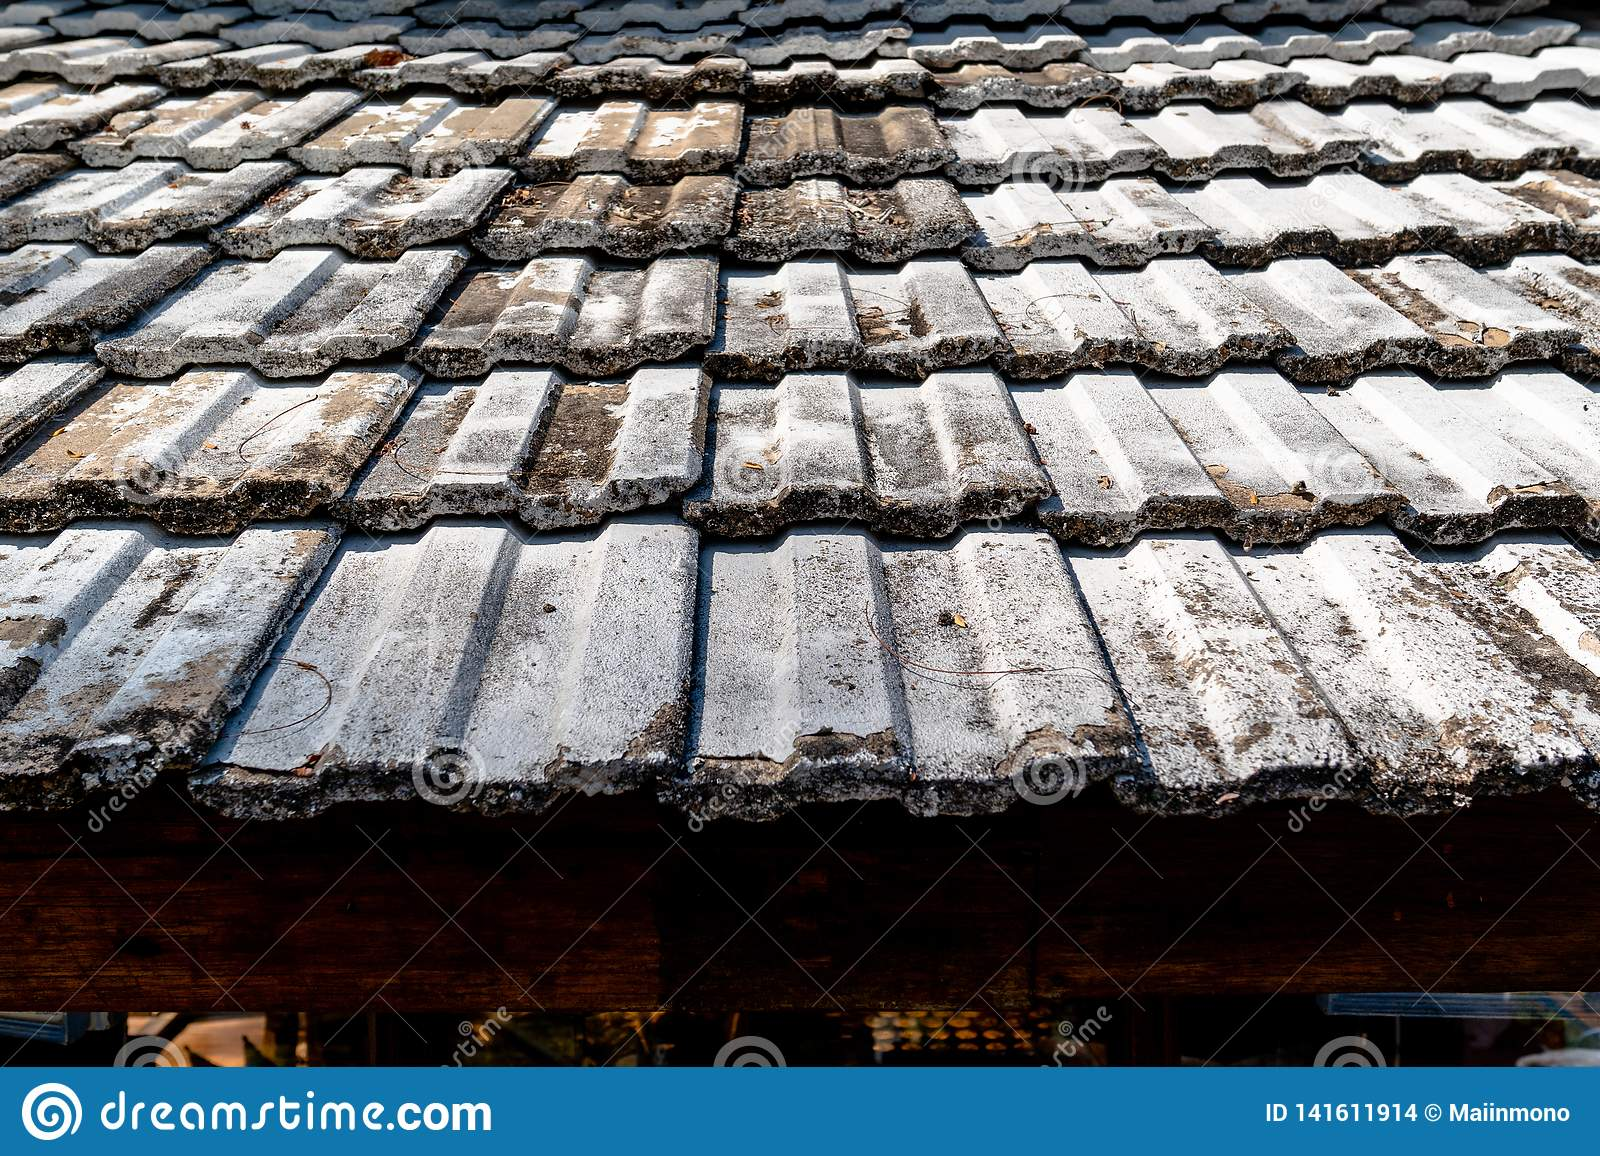 Pattern of old clay tile roof of a house with old-fashioned design.